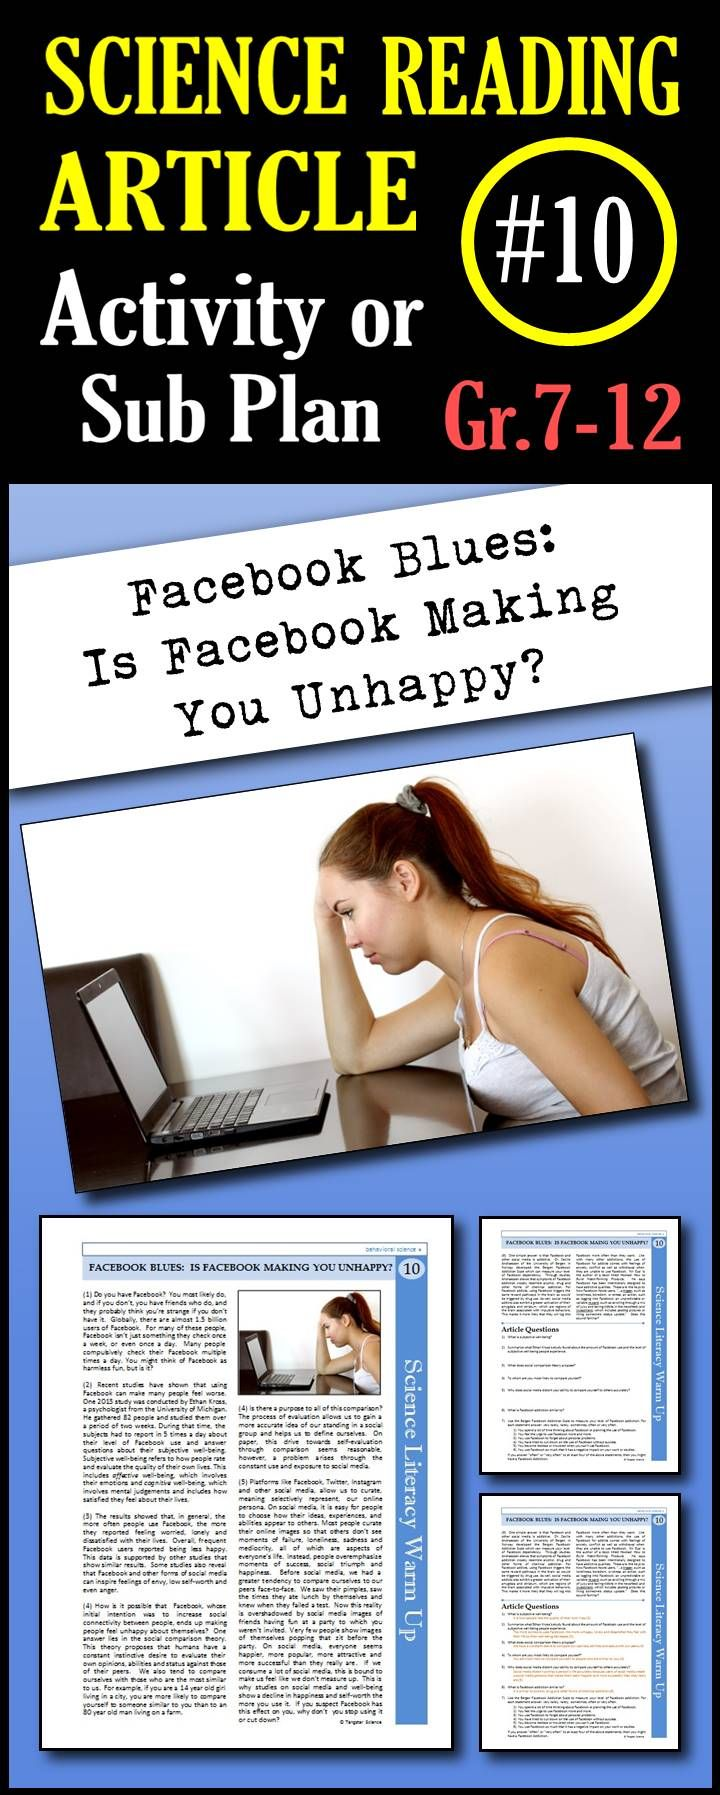 In this article, students will read about studies that show that using Facebook correlate with decreased feelings of well-being. Facebook addiction is also discussed along with a the Bergen Facebook Addiction Scale which students can use to diagnose their own Facebook dependency. This is a great in class activity, homework assignment, weekly science reading assignment, sub plan or in school suspension plan.  Use this to save time looking for engaging and appropriate articles with questions!